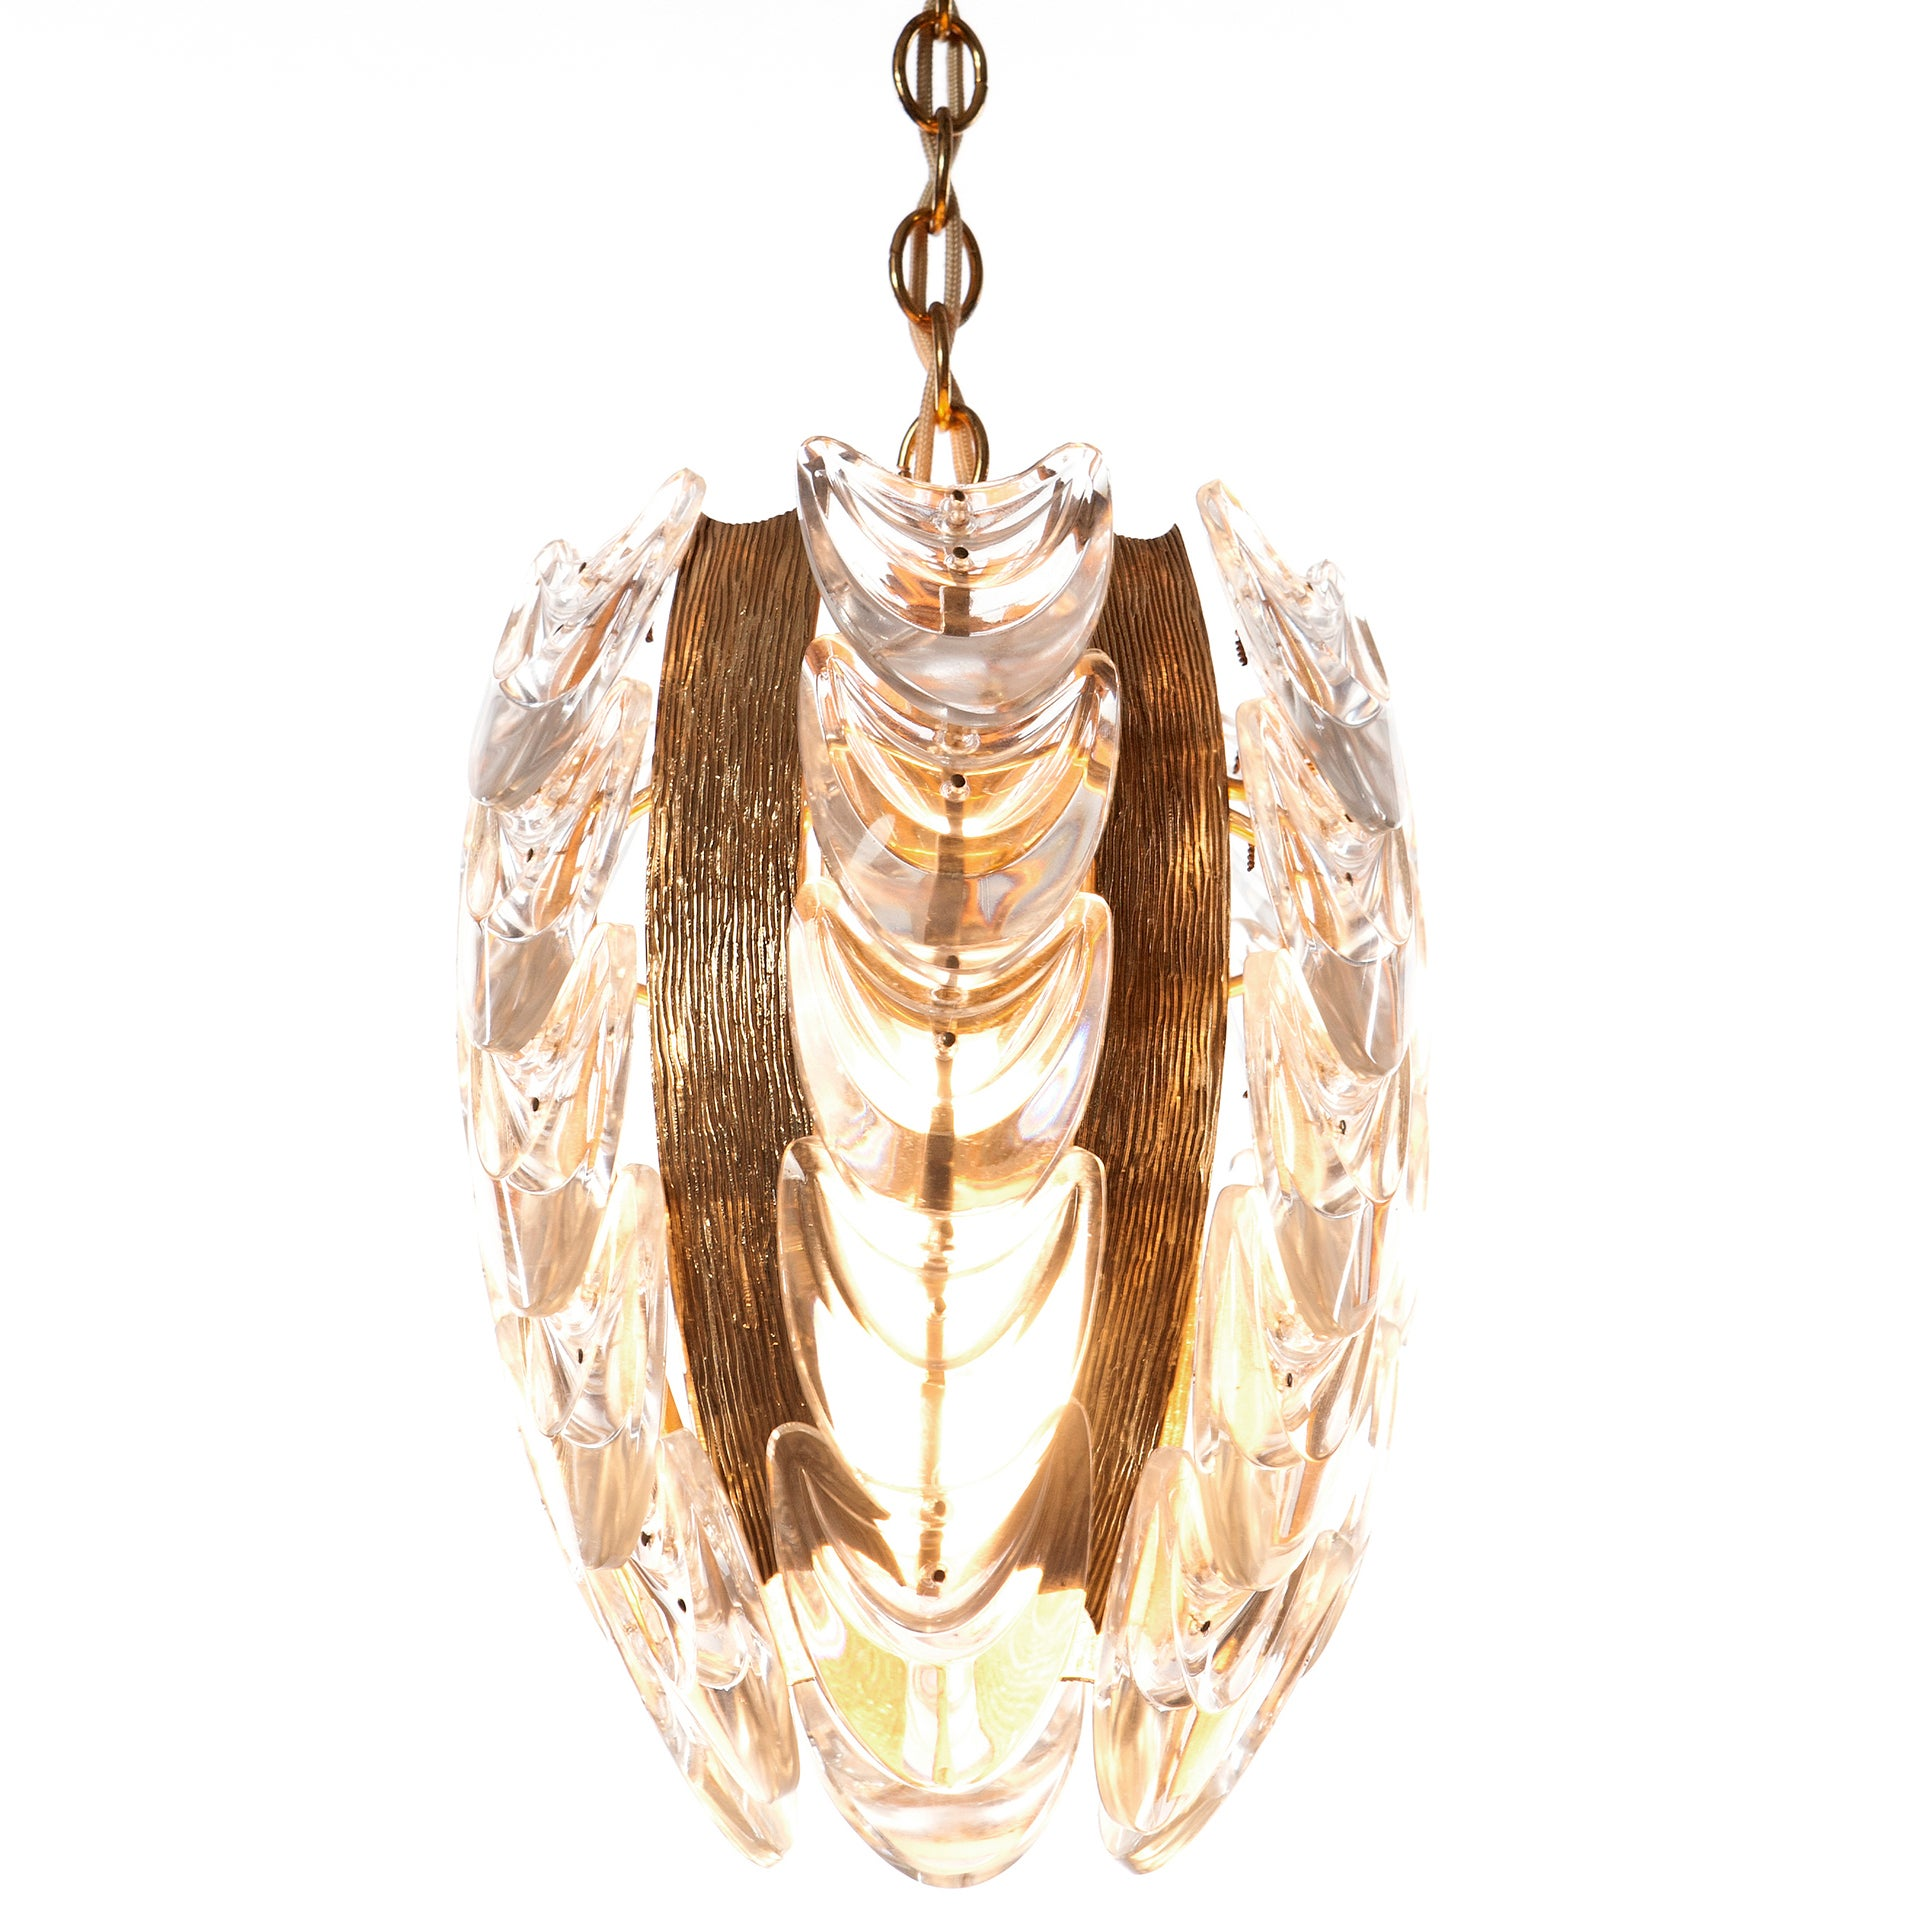 Palwa 1960s Stylish Glass & Brass Pendant Light